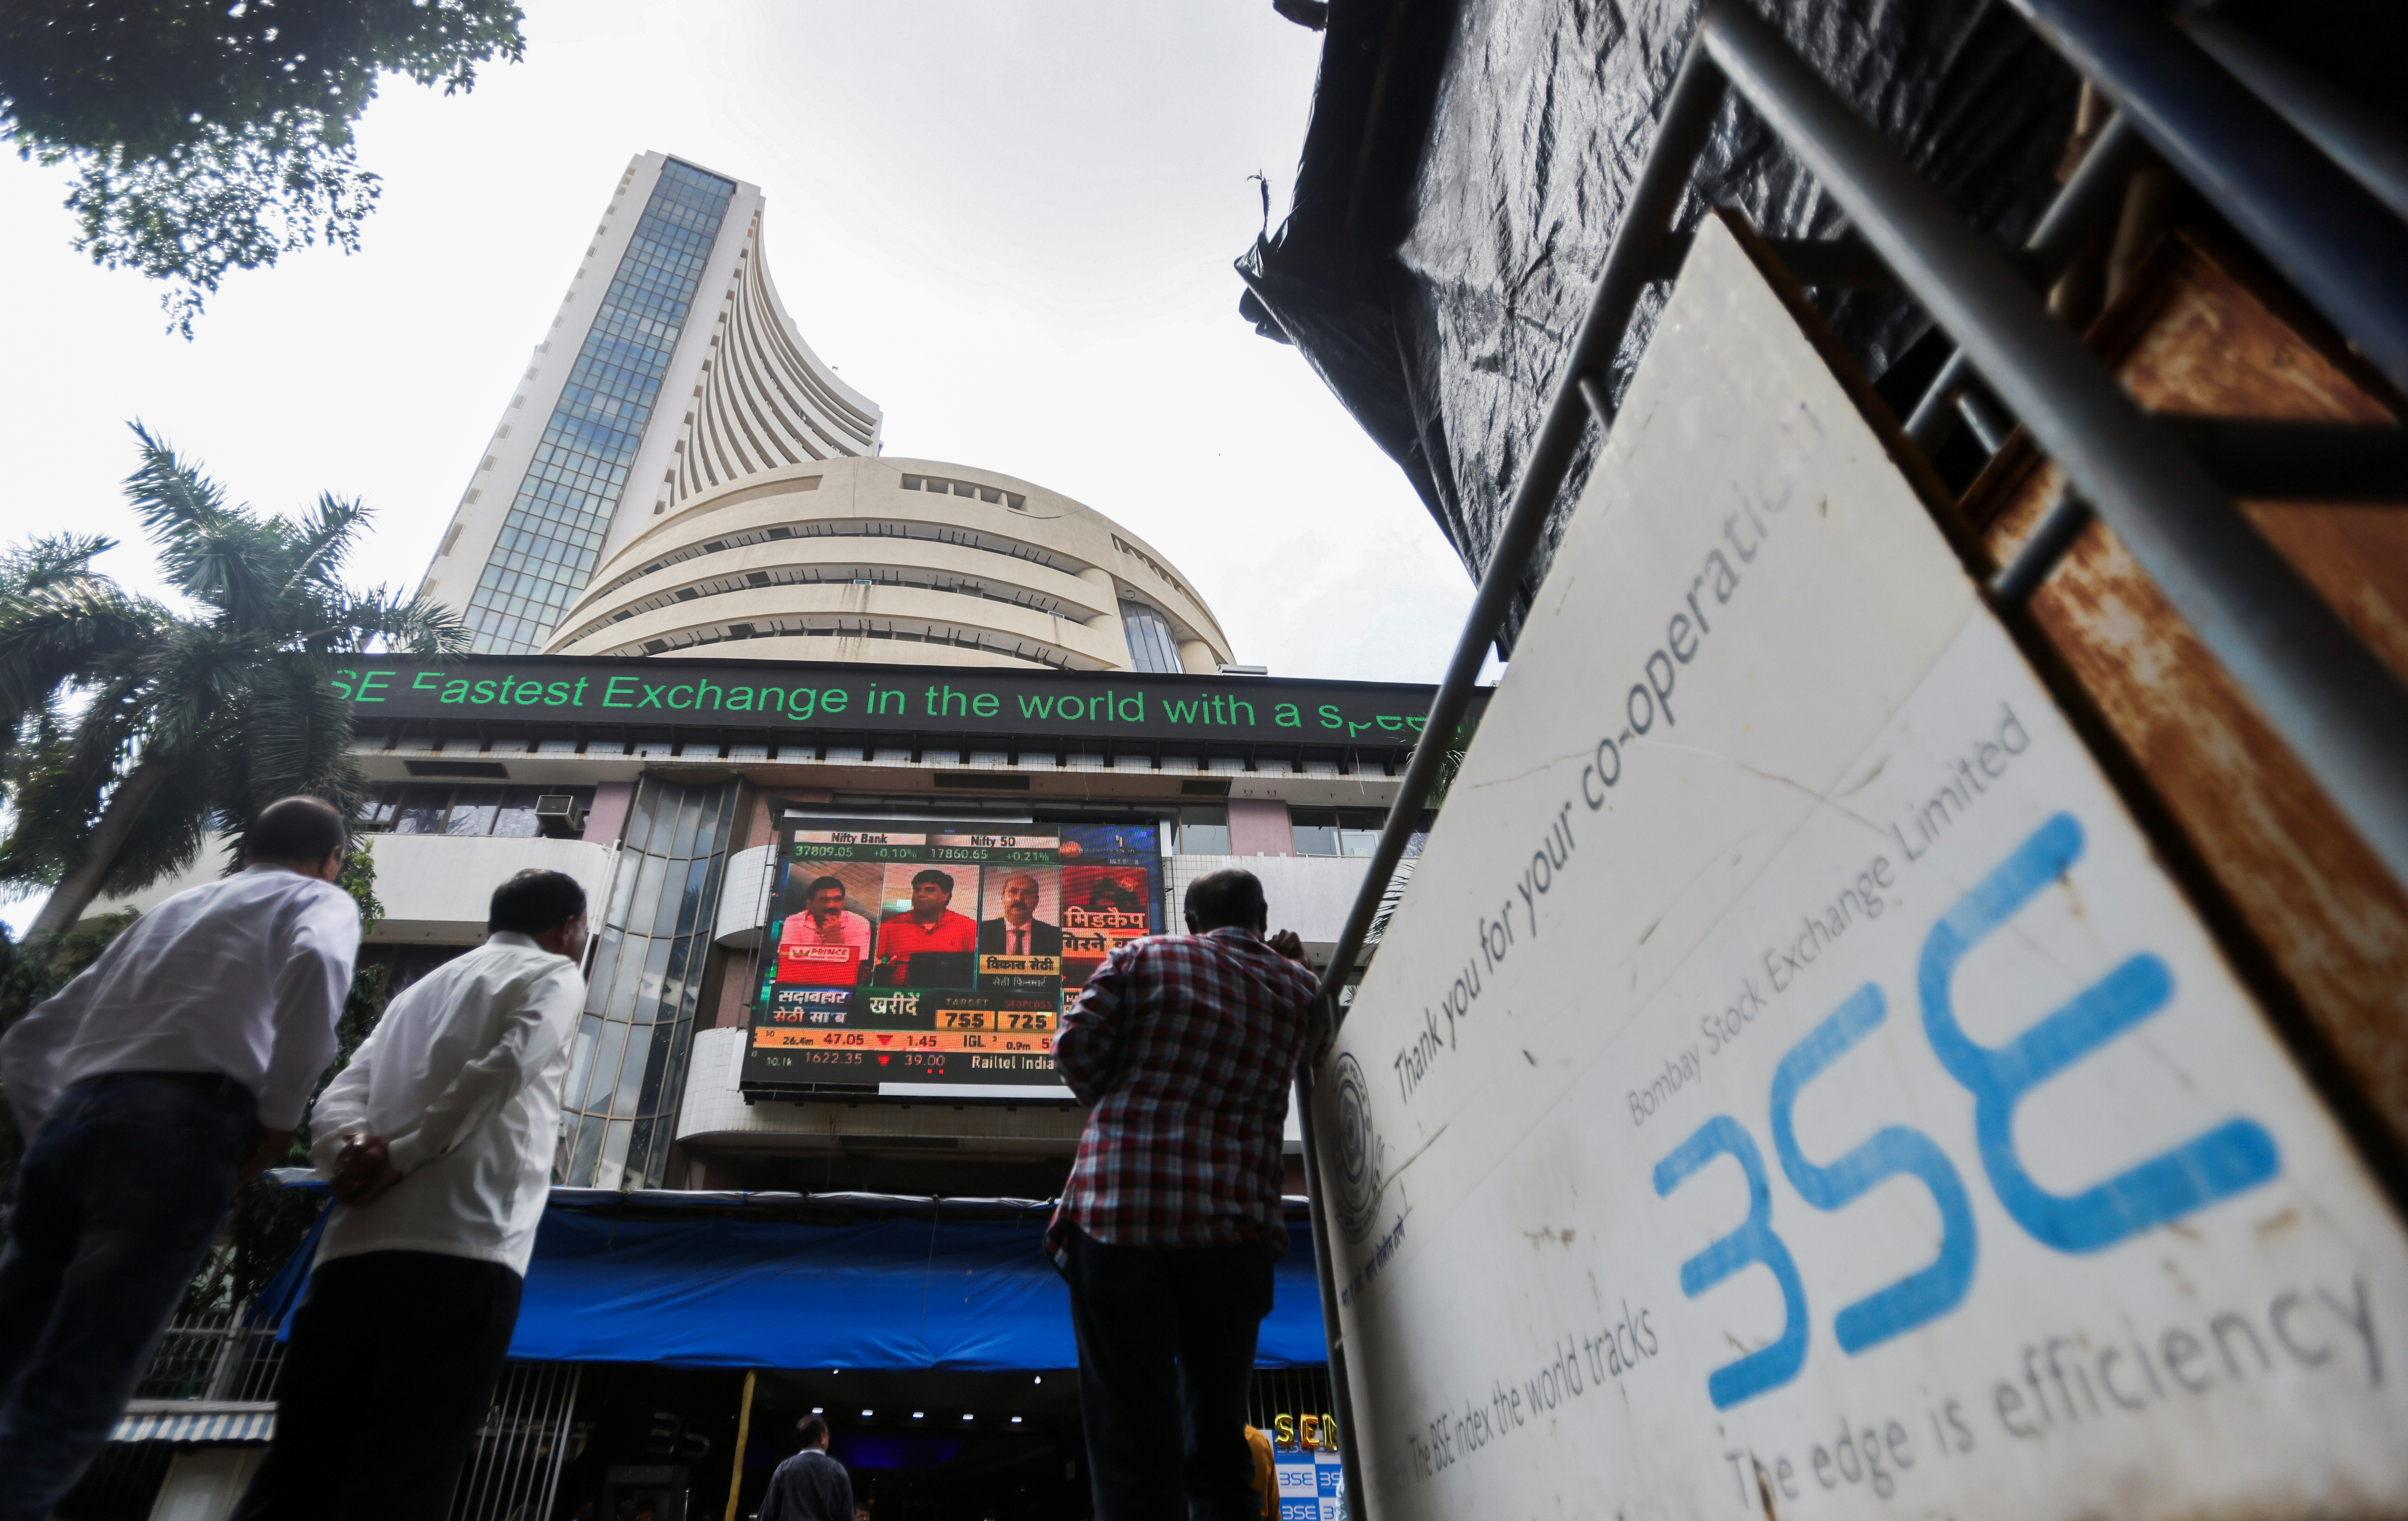 People stand outside the Bombay Stock Exchange (BSE), after Sensex surpassed the 60,000 level for the first time, in Mumbai, India, September 24, 2021. REUTERS/Francis Mascarenhas